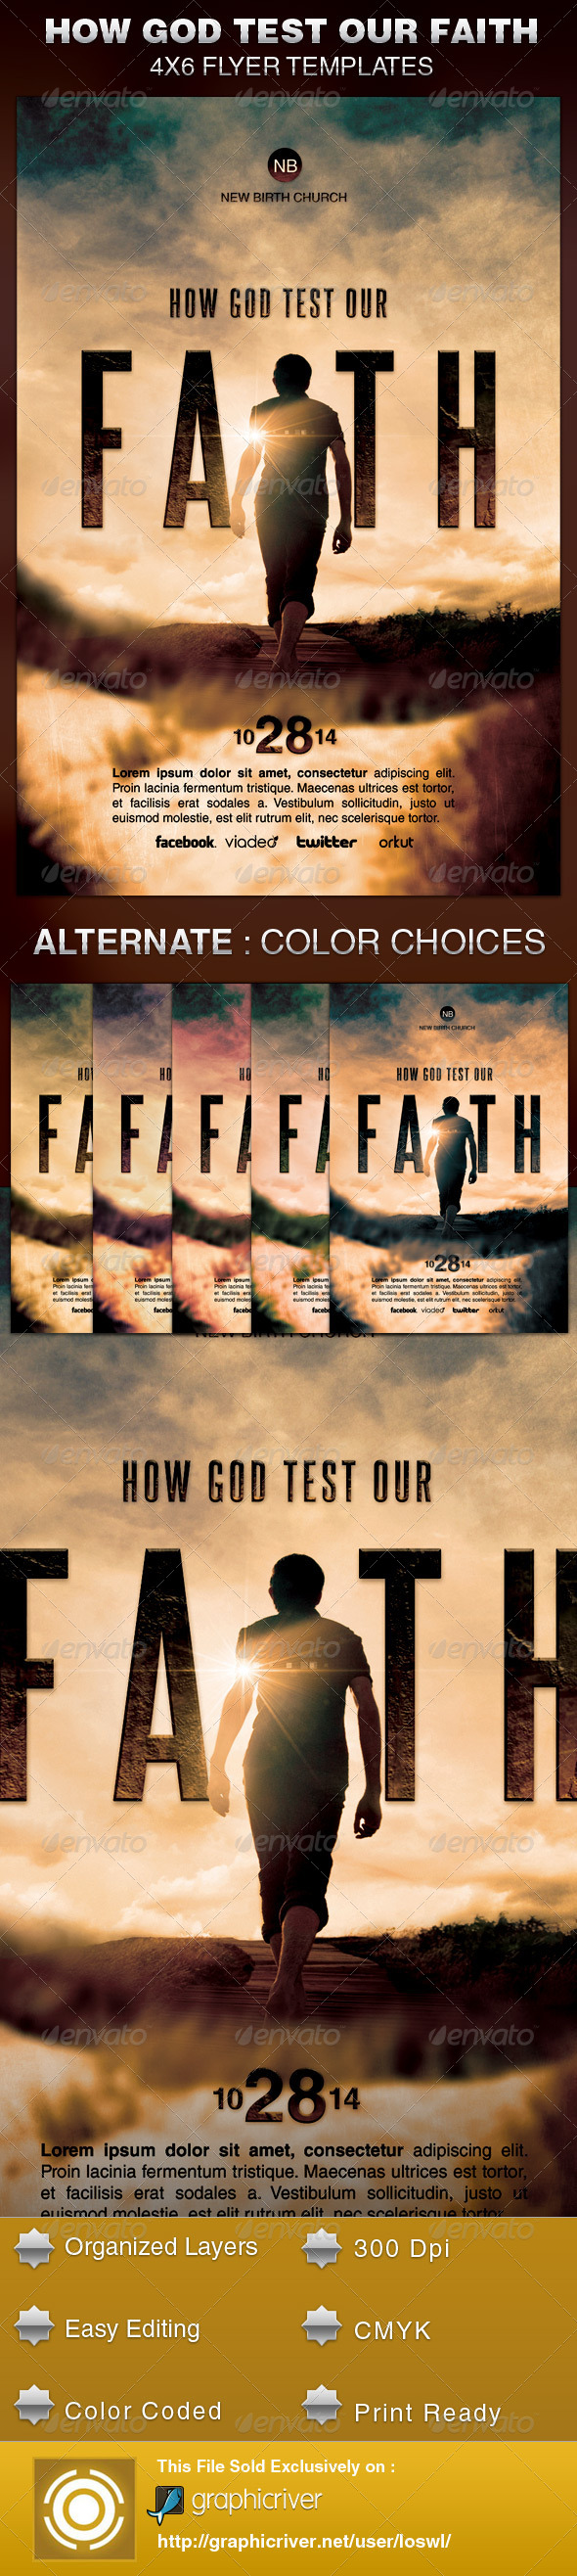 How God Test Our Faith Church Flyer Template - Church Flyers